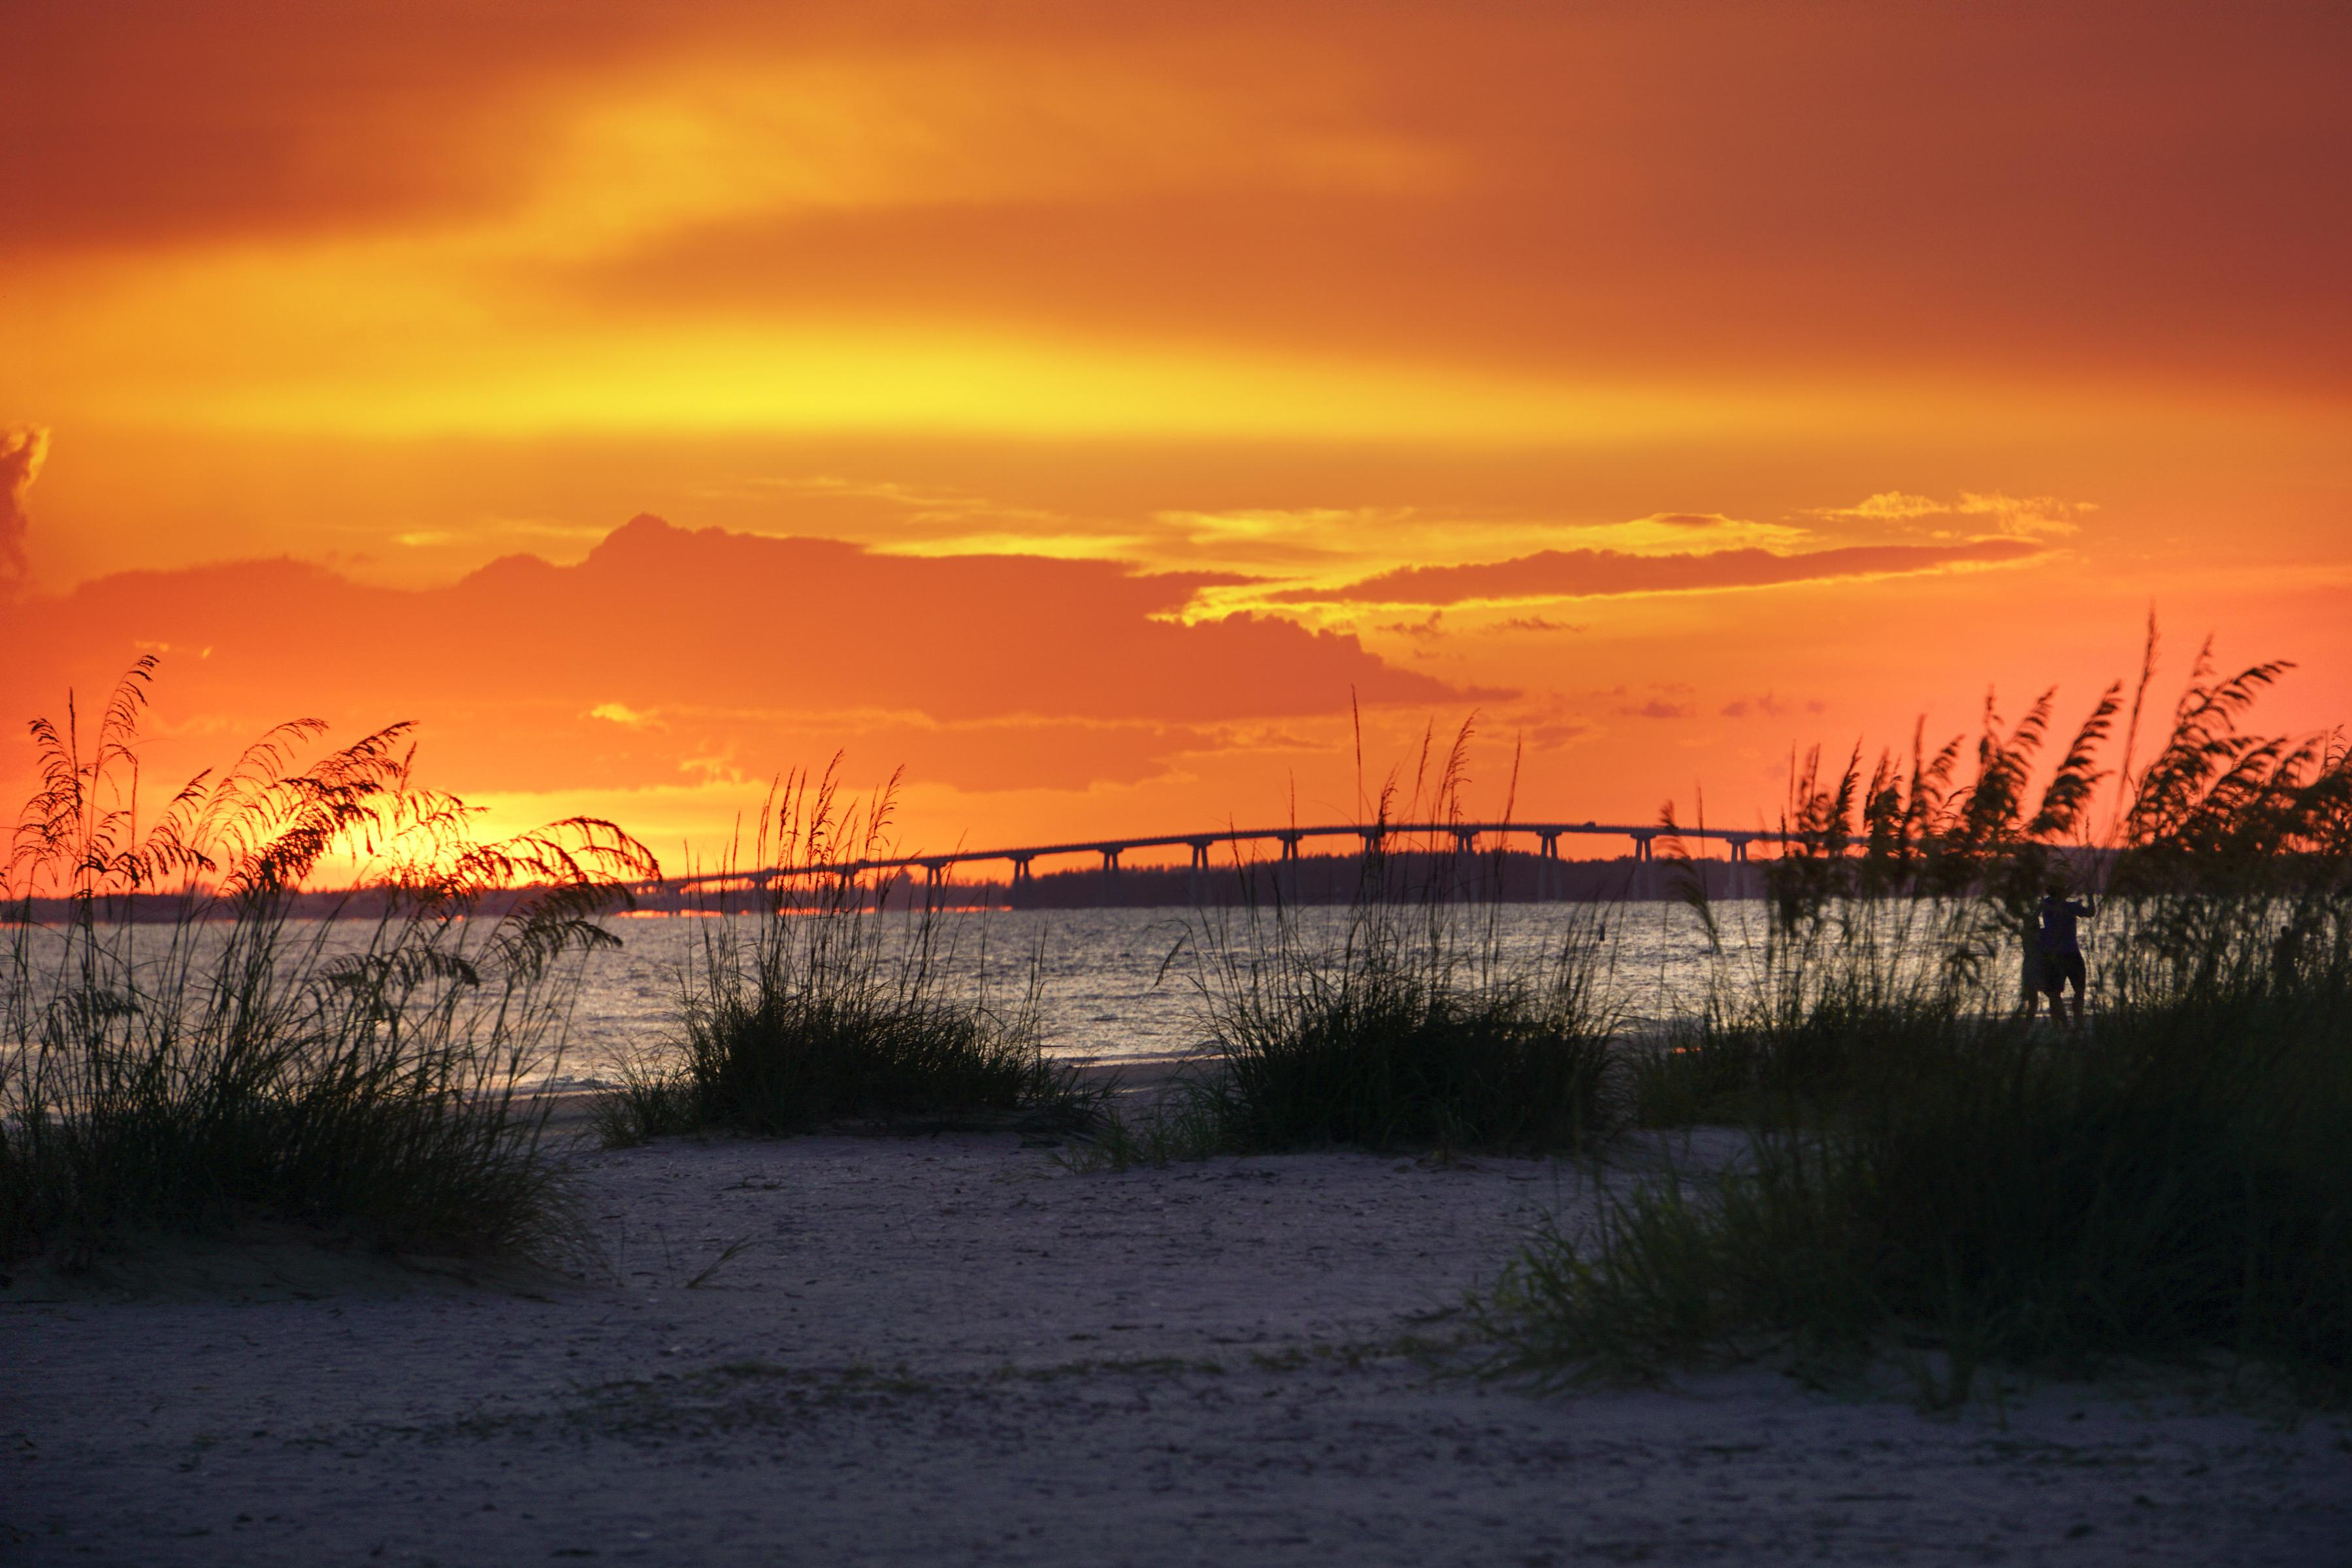 Bring your boat and explore the natural beauty of Fort Myers.